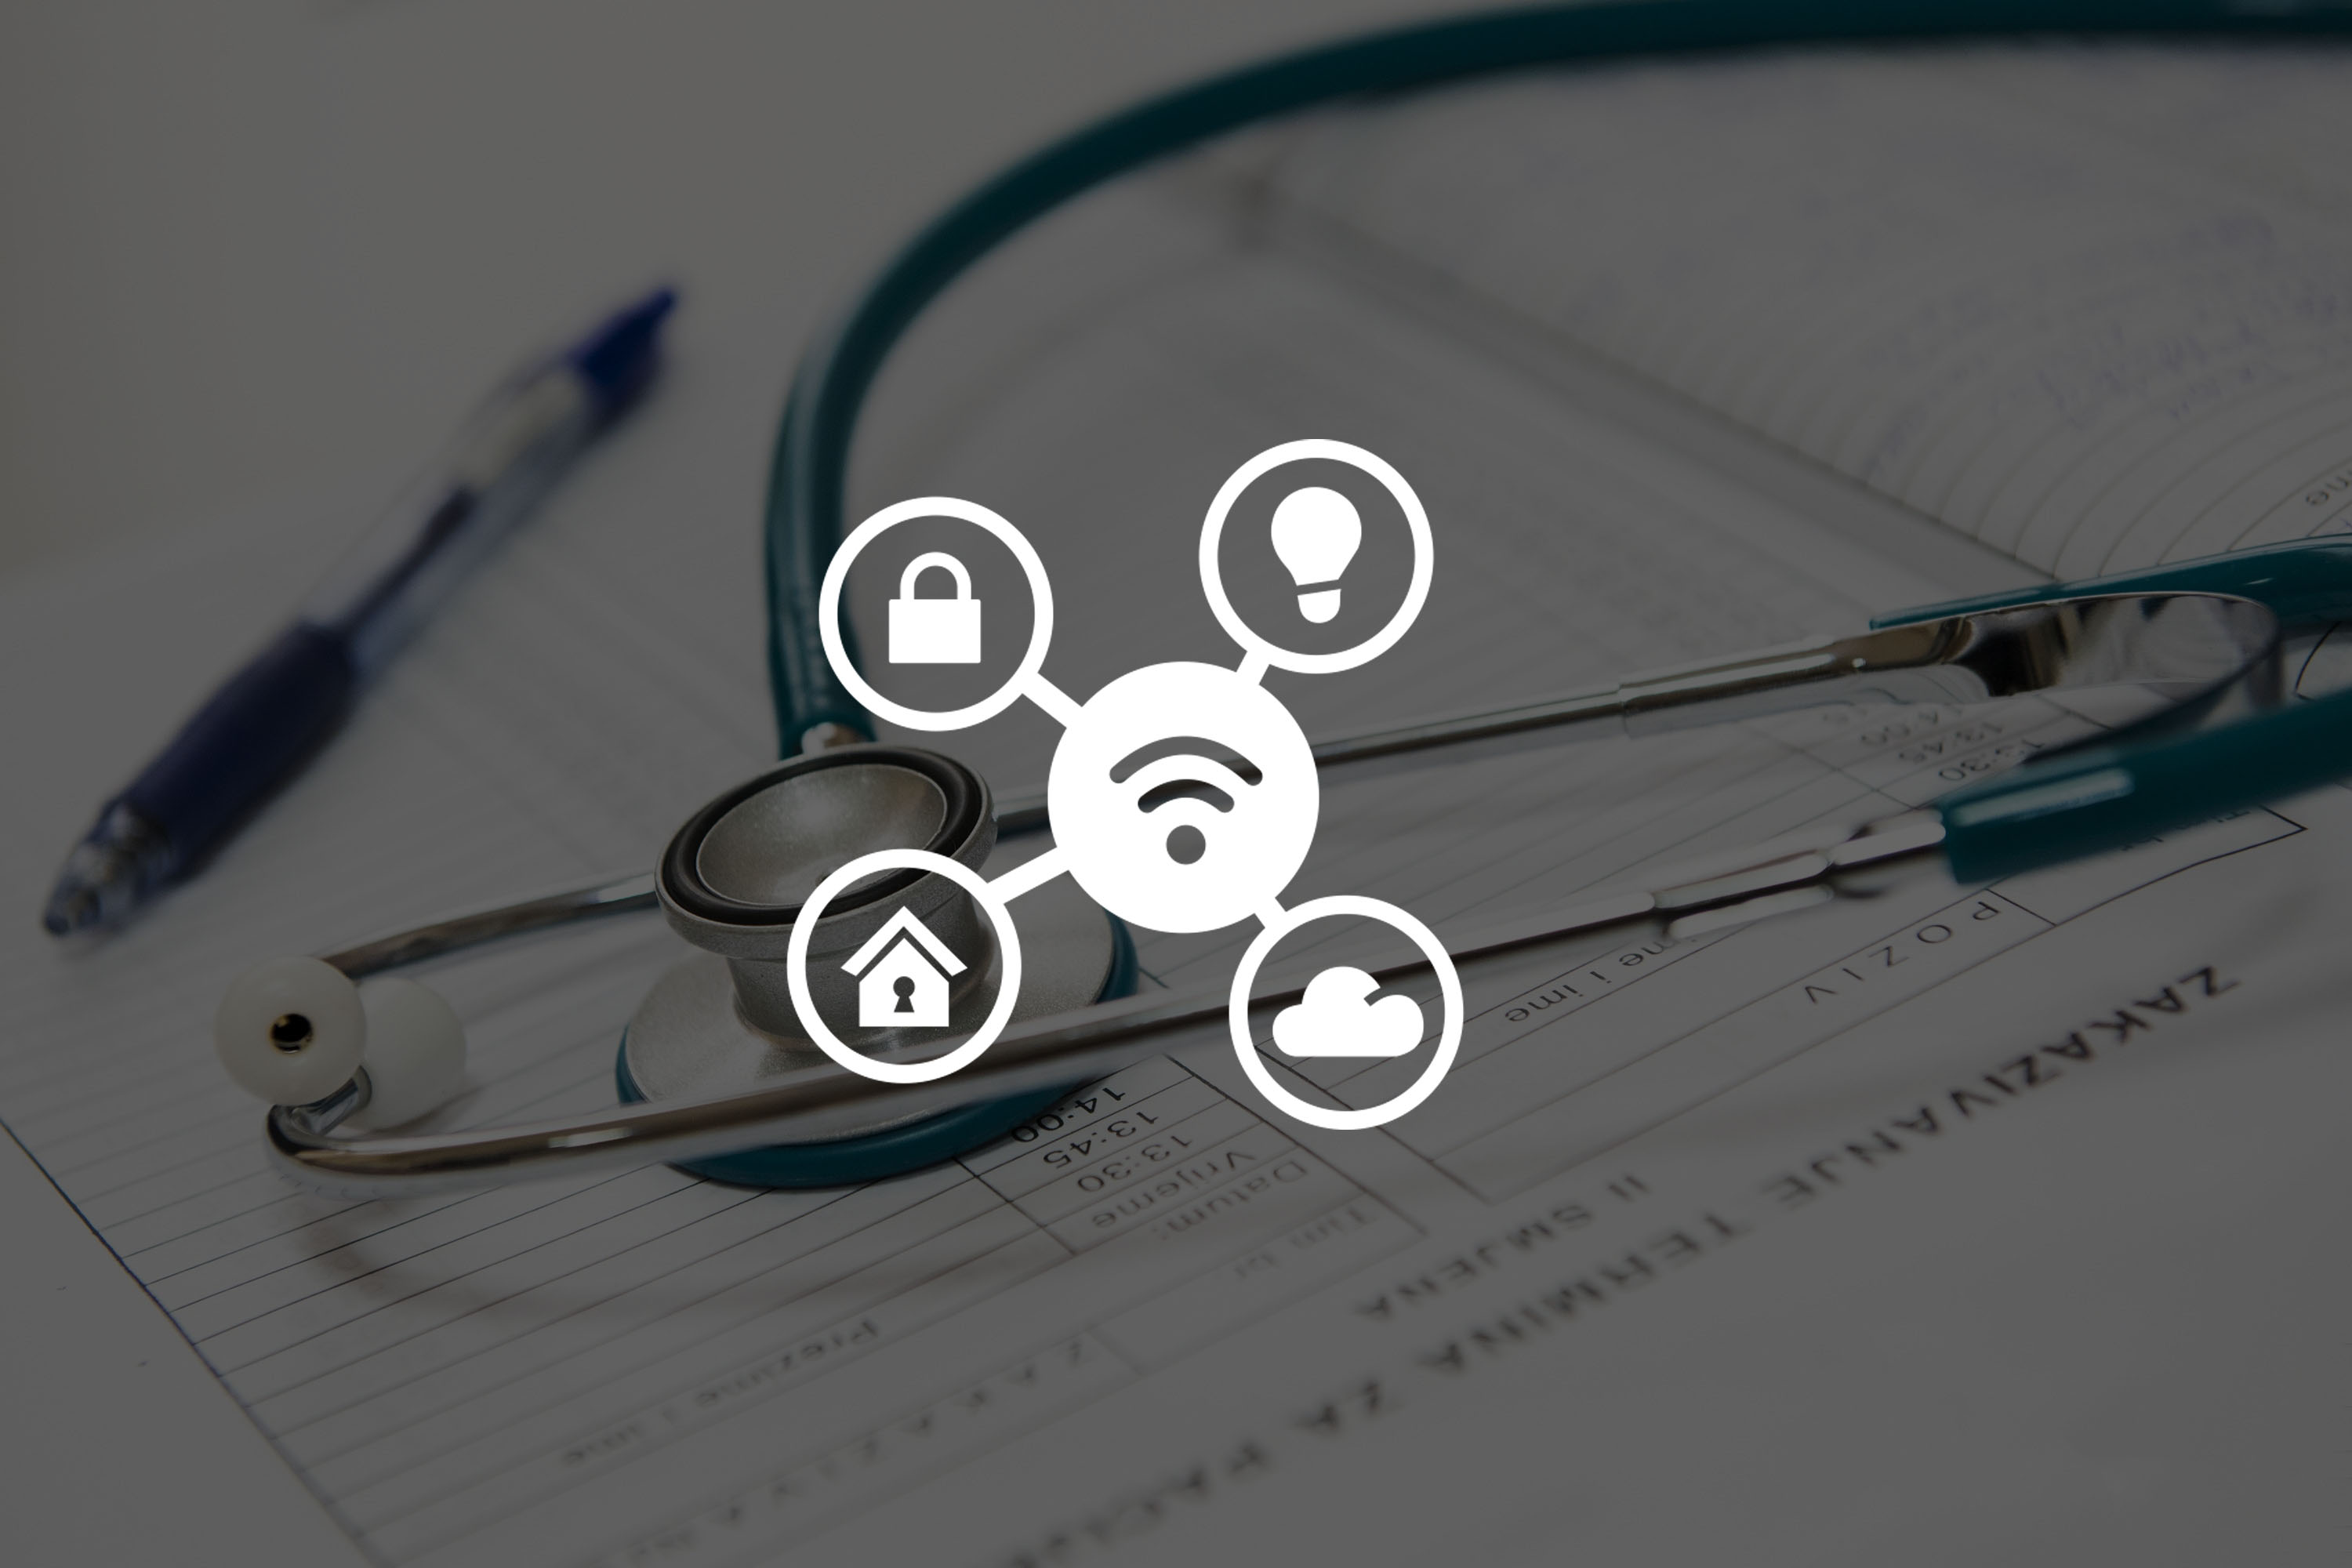 Why healthcare IoT requires stronger healthcare cybersecurity